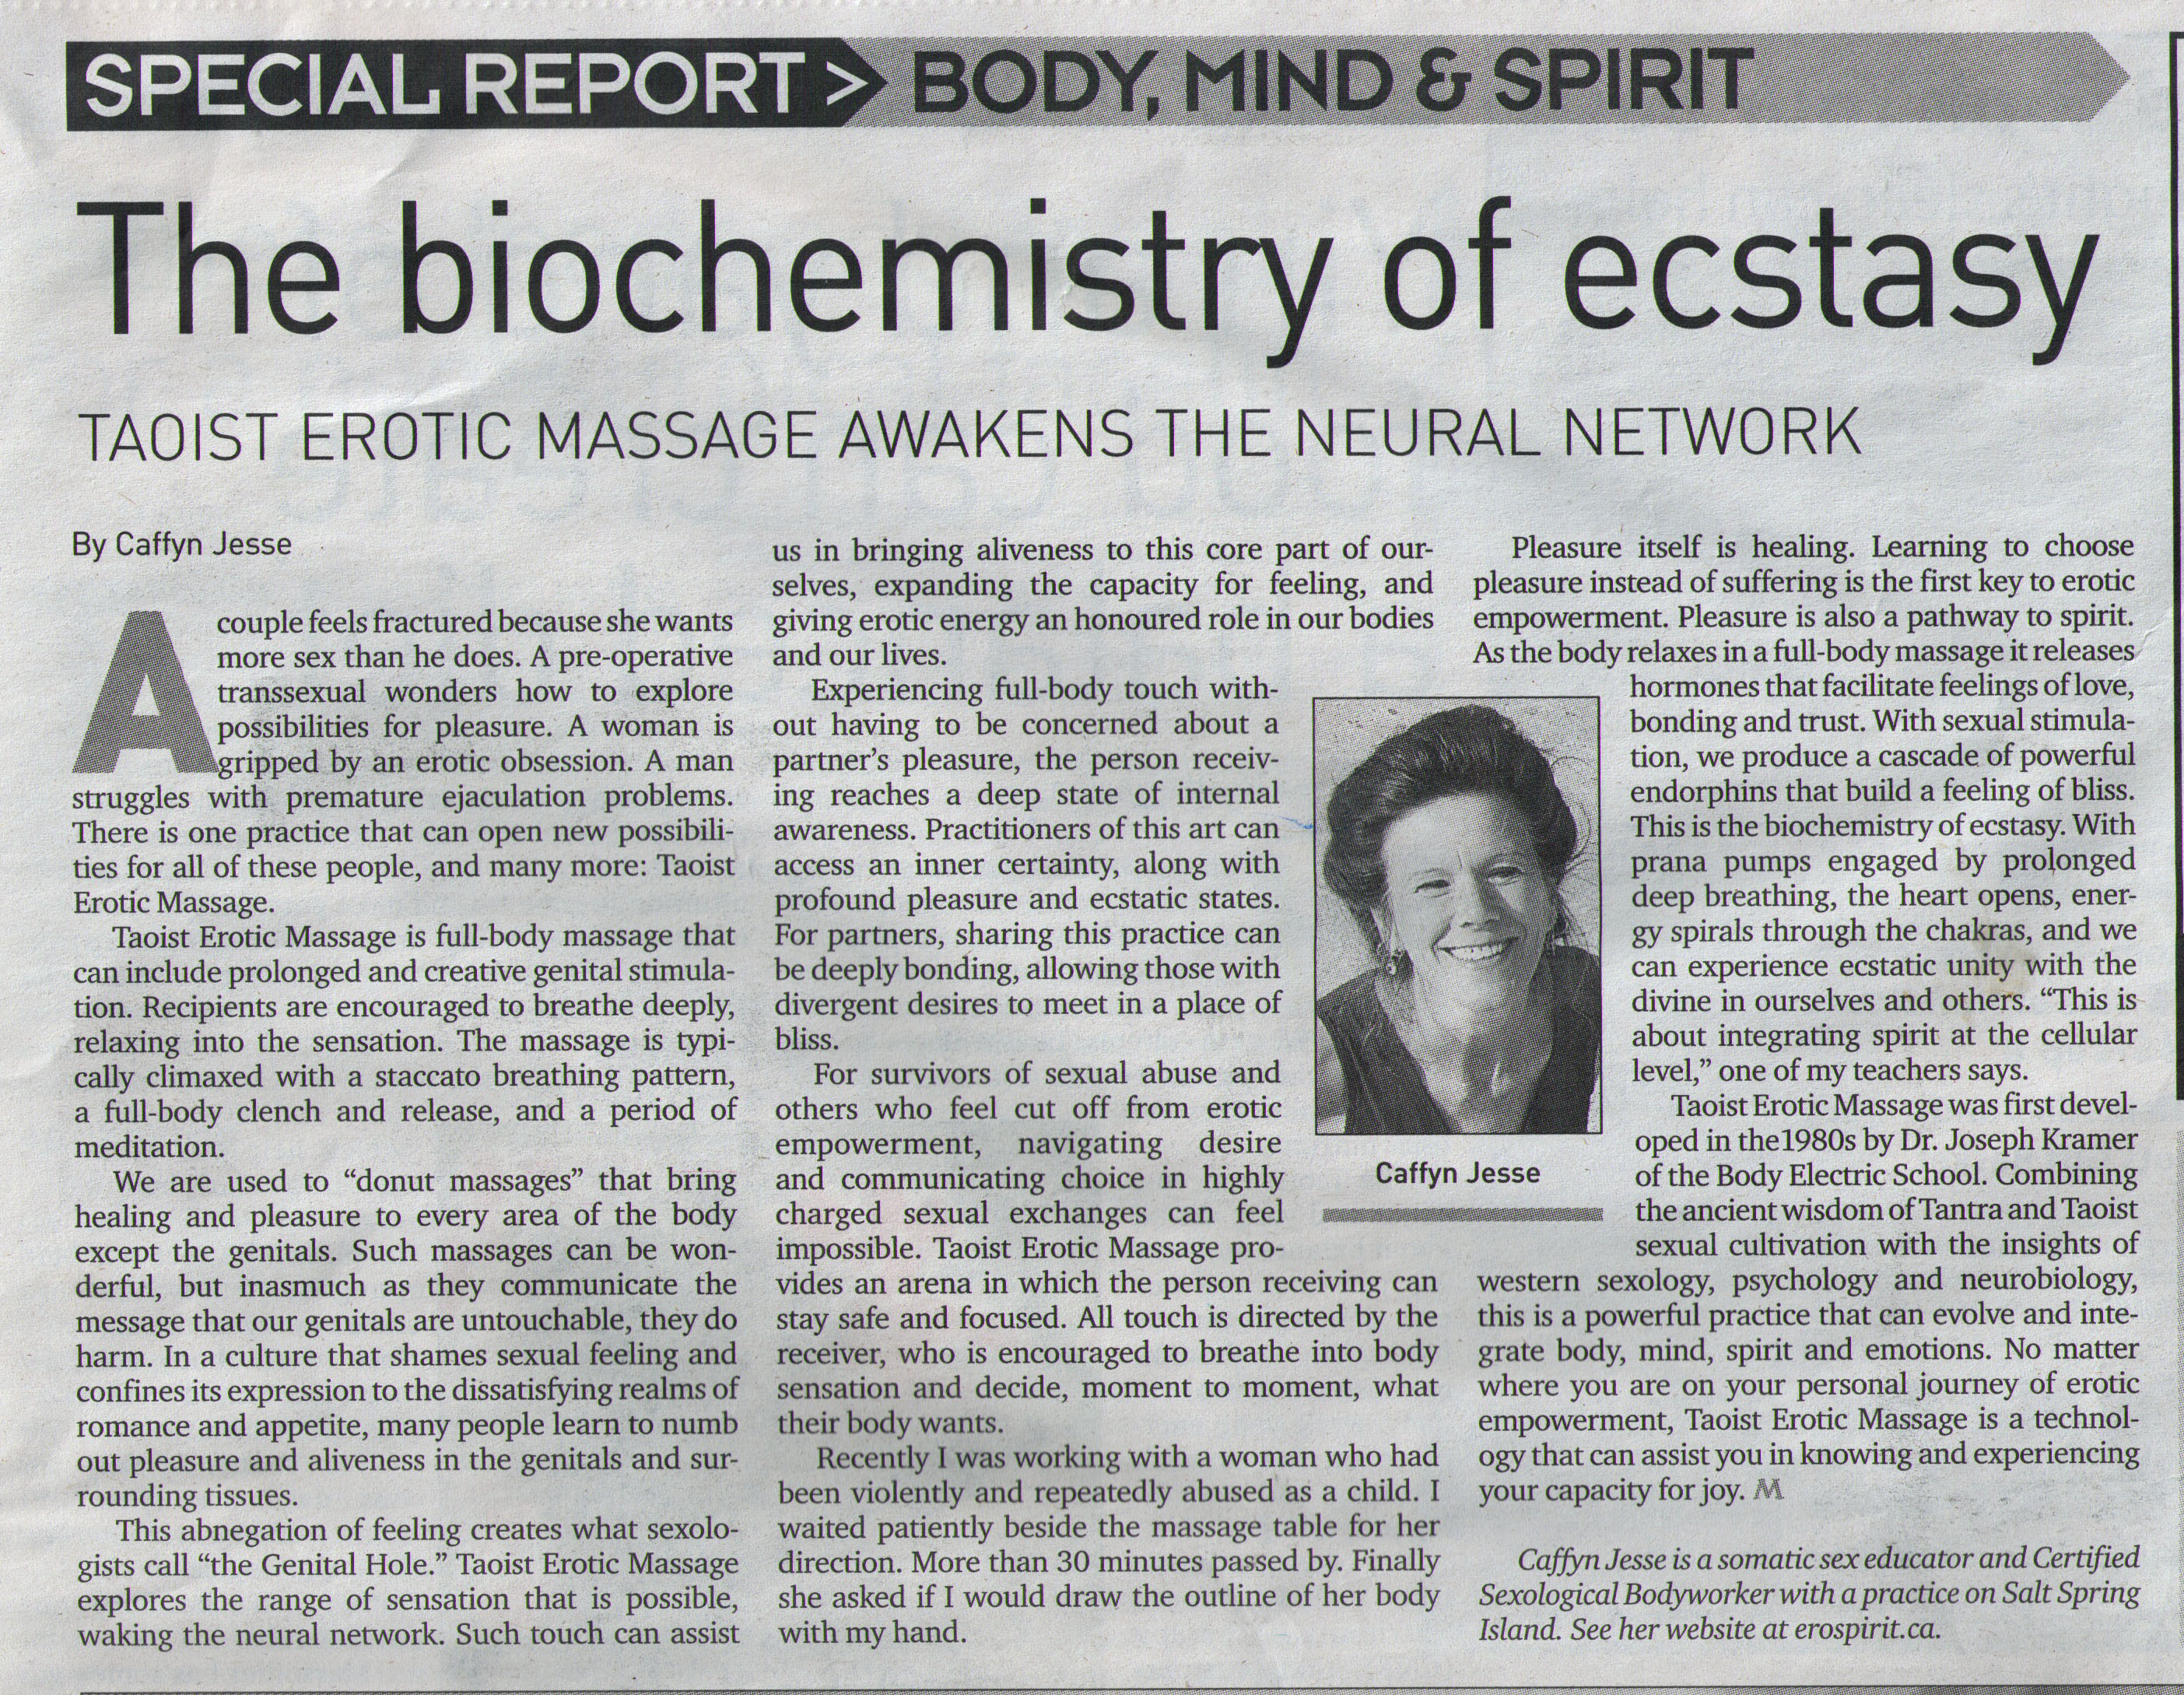 The Biochemistry of Ecstasy by Caffyn Jesse